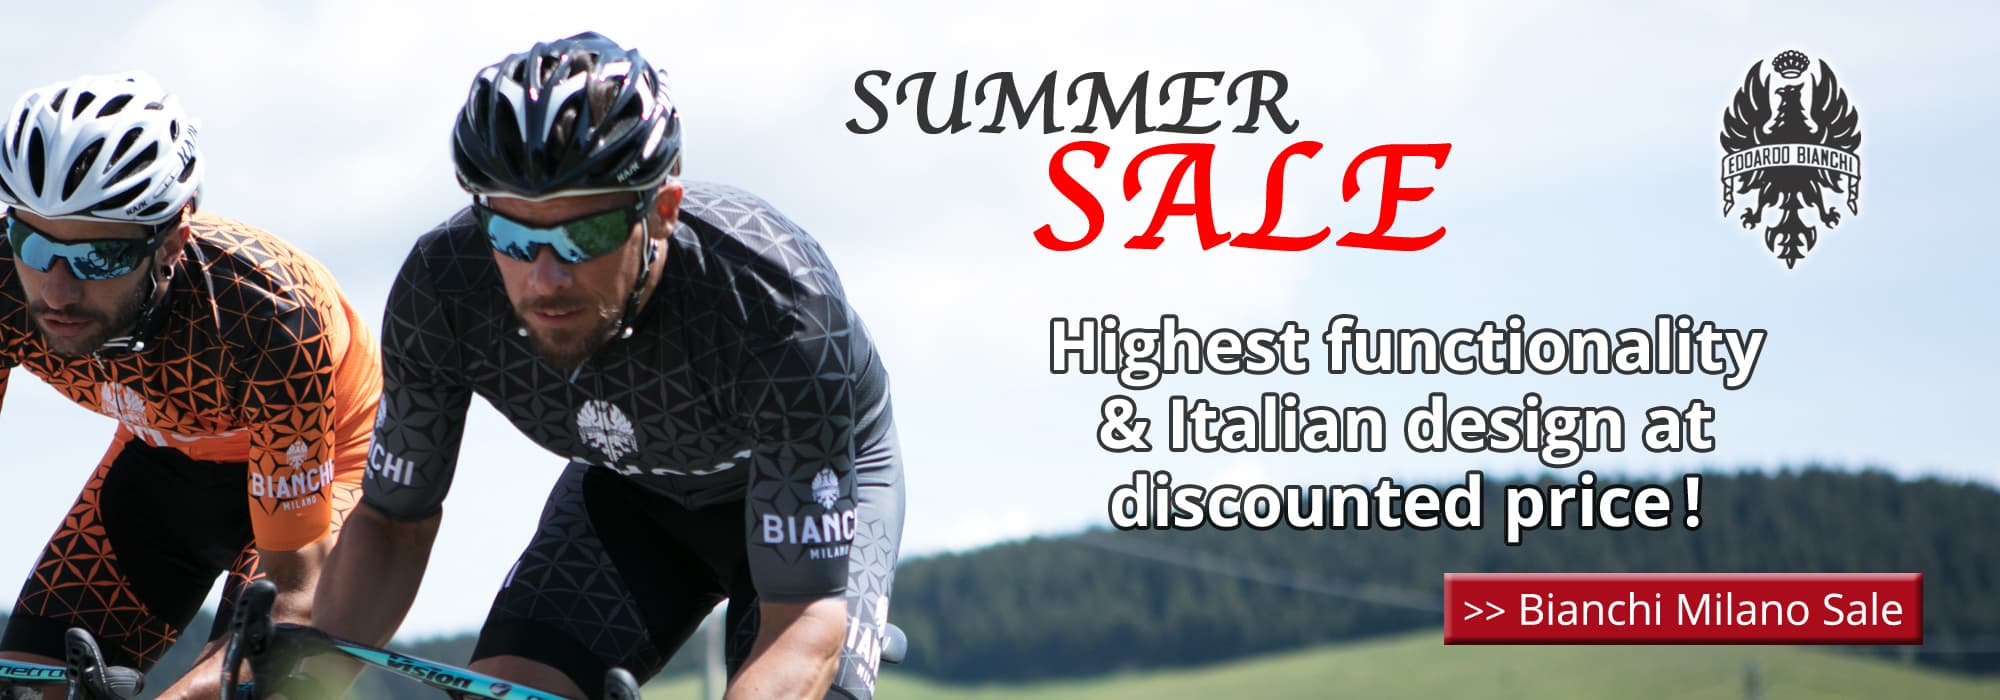 Bianchi Milano Summer Sale - Highest functionality & Italian design at discounted price